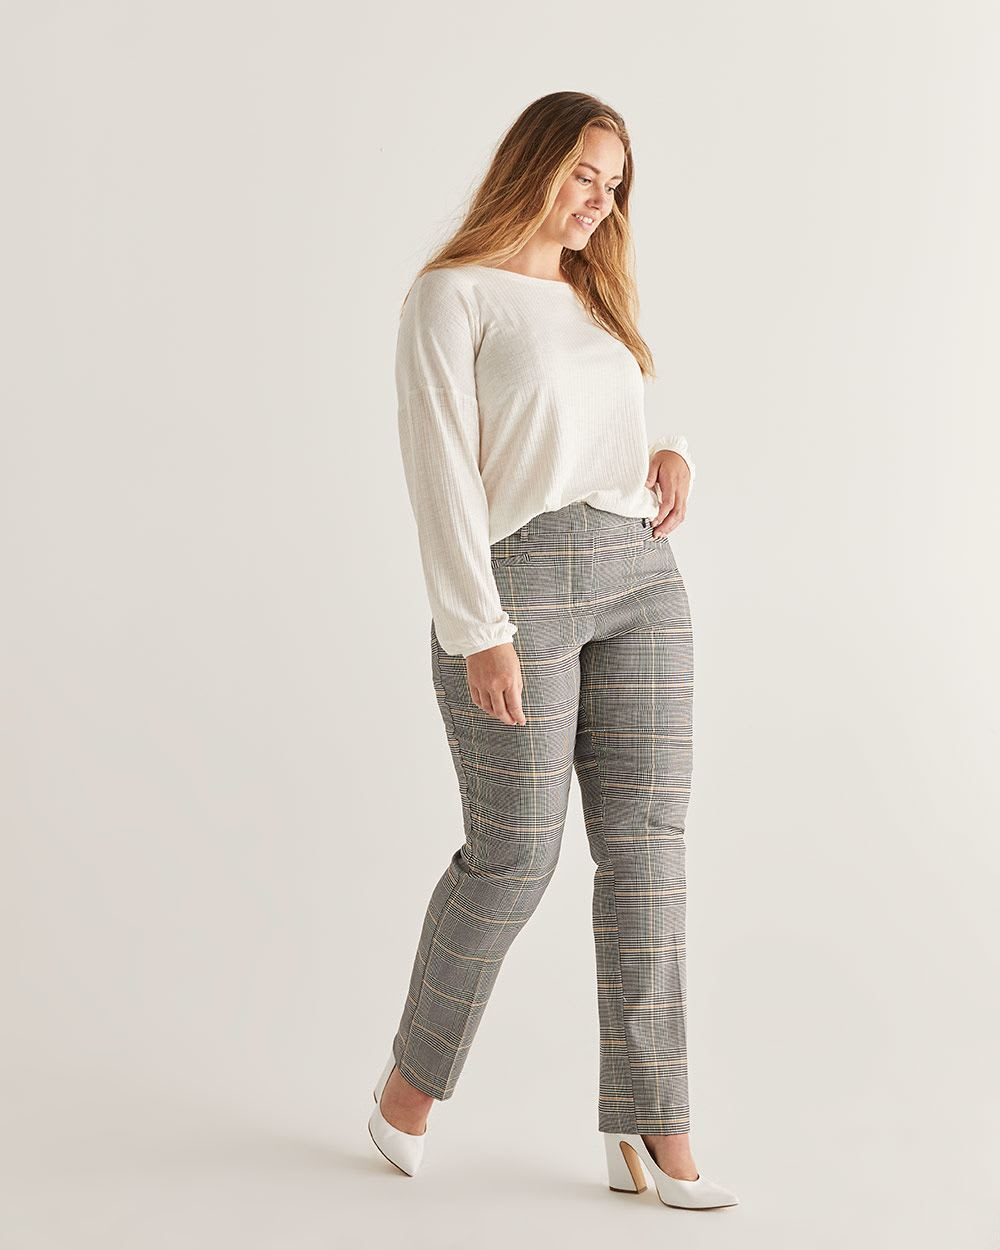 The Iconic Glen Plaid Straight Pull On Pants - Tall